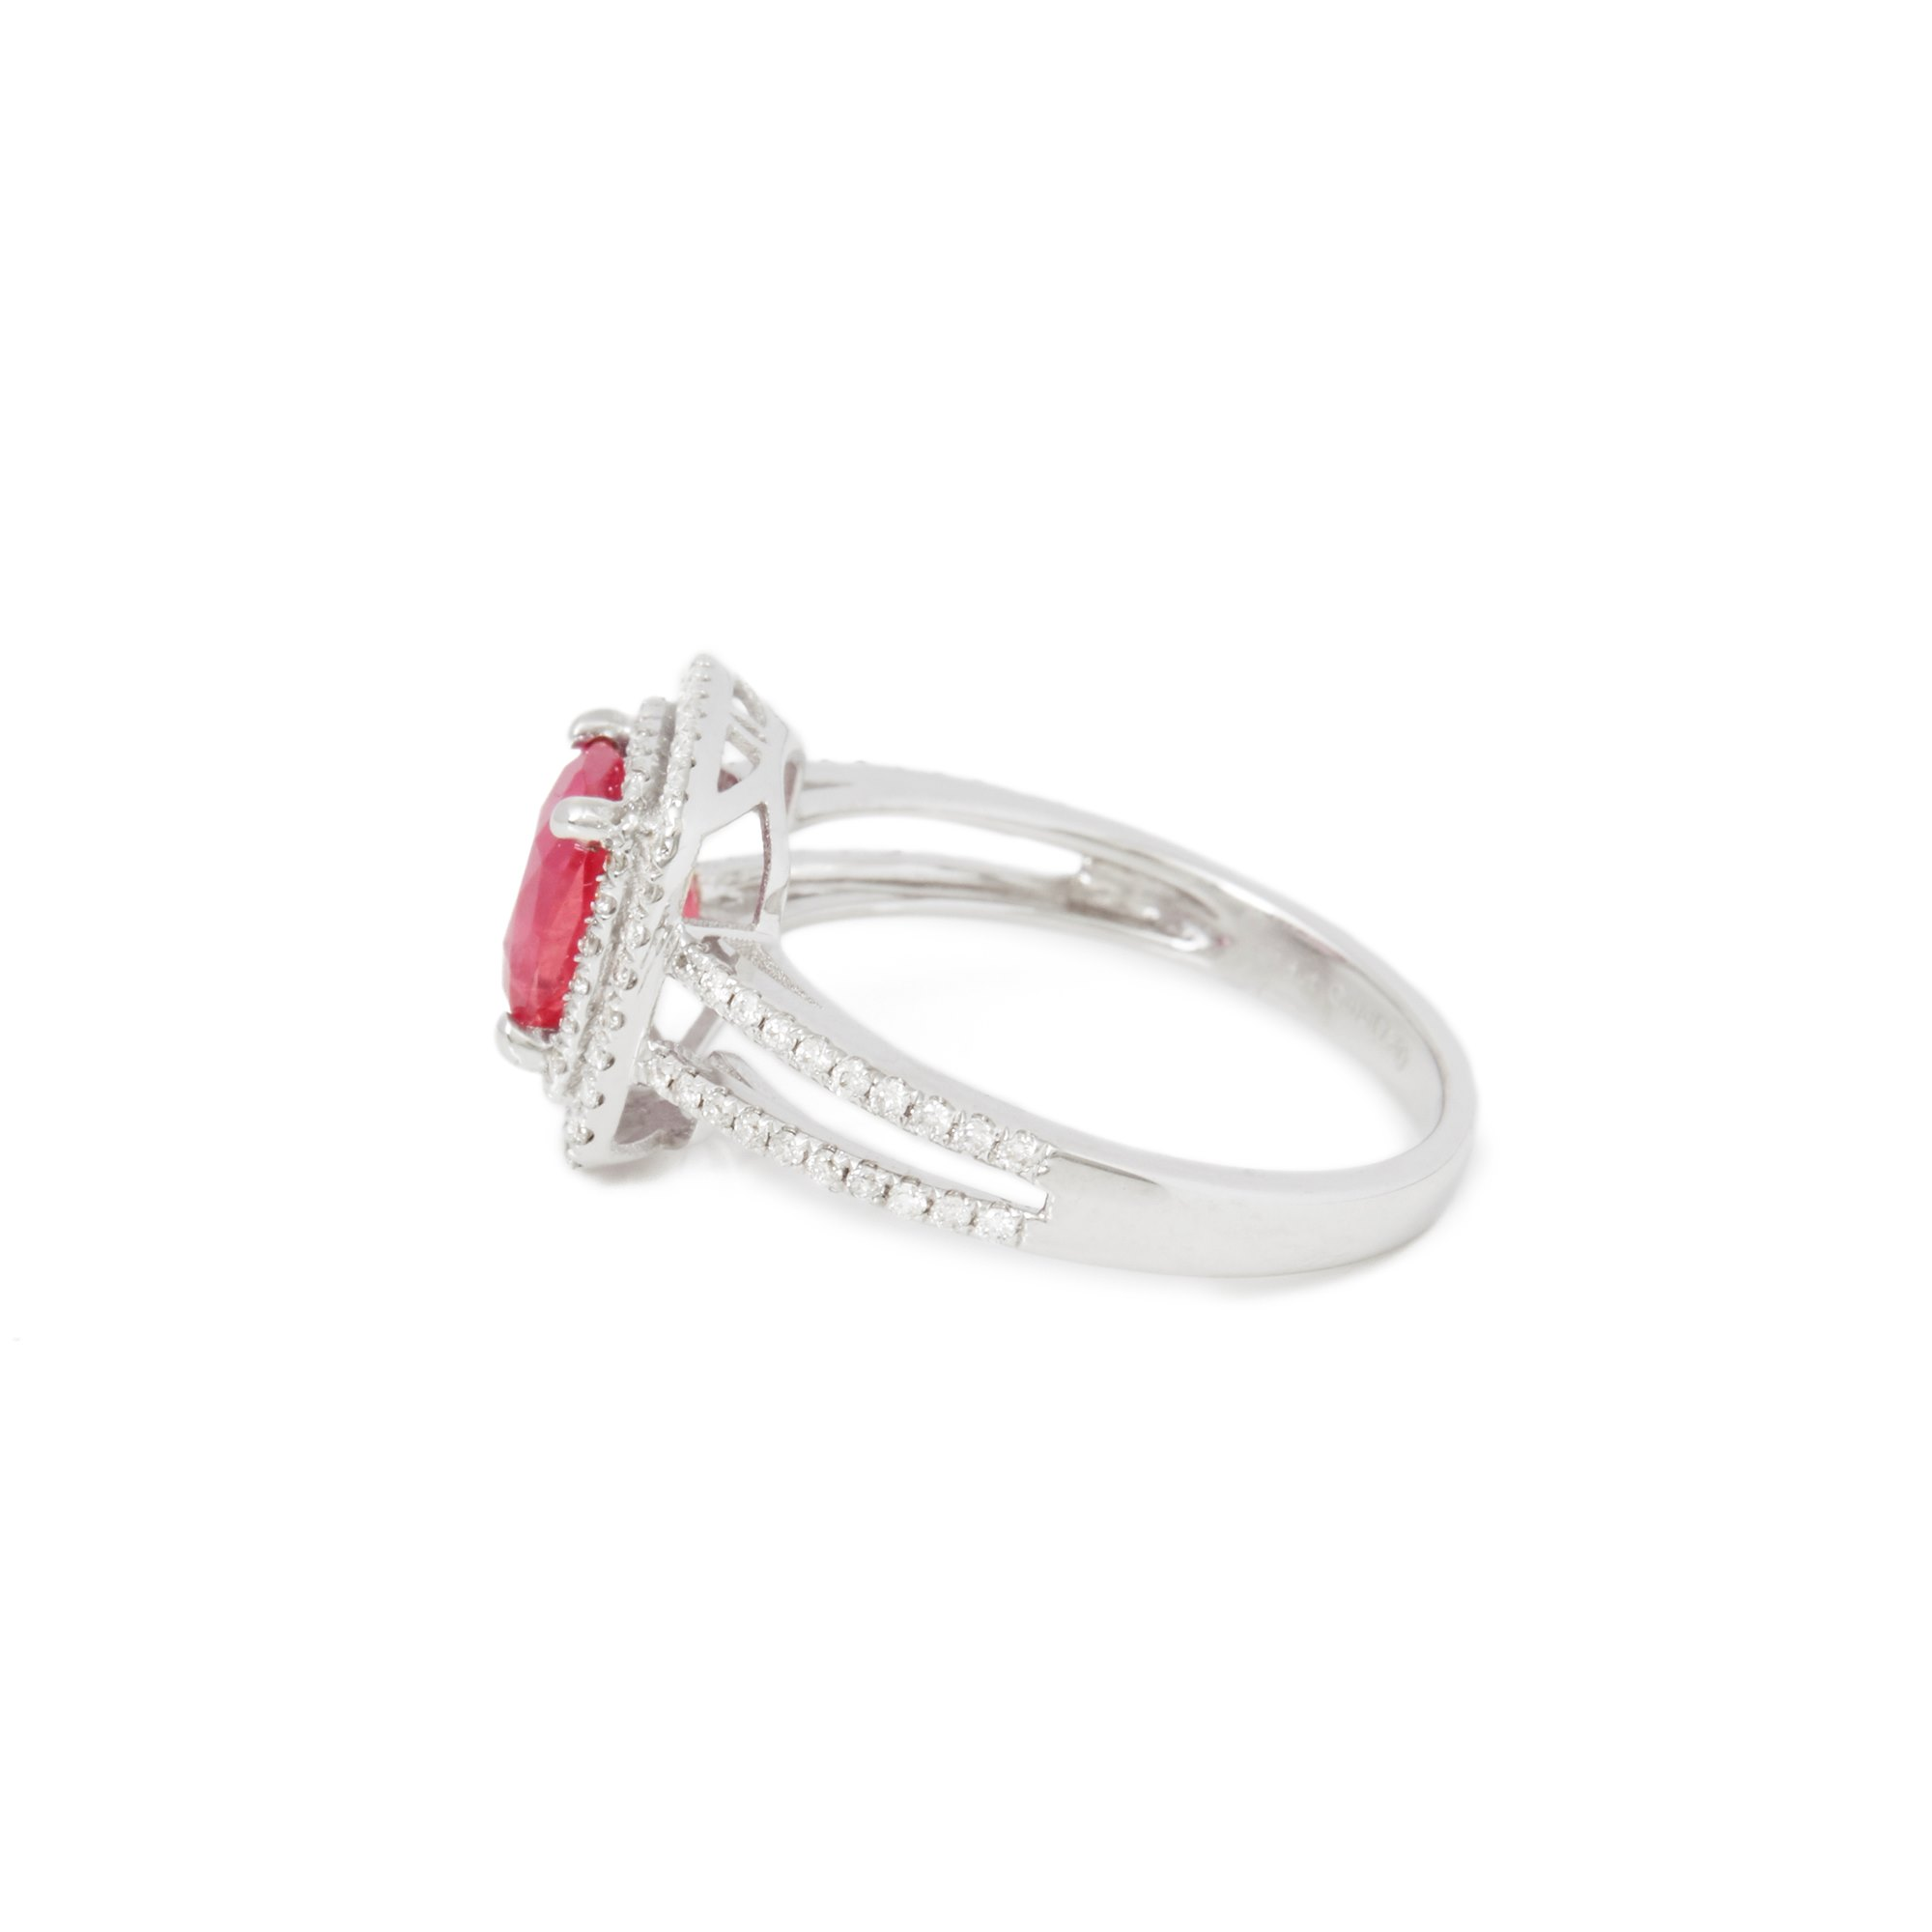 David Jerome Certified 1.85ct Untreated Vietnamese Cushion Cut Ruby and Diamond 18ct Gold Ring